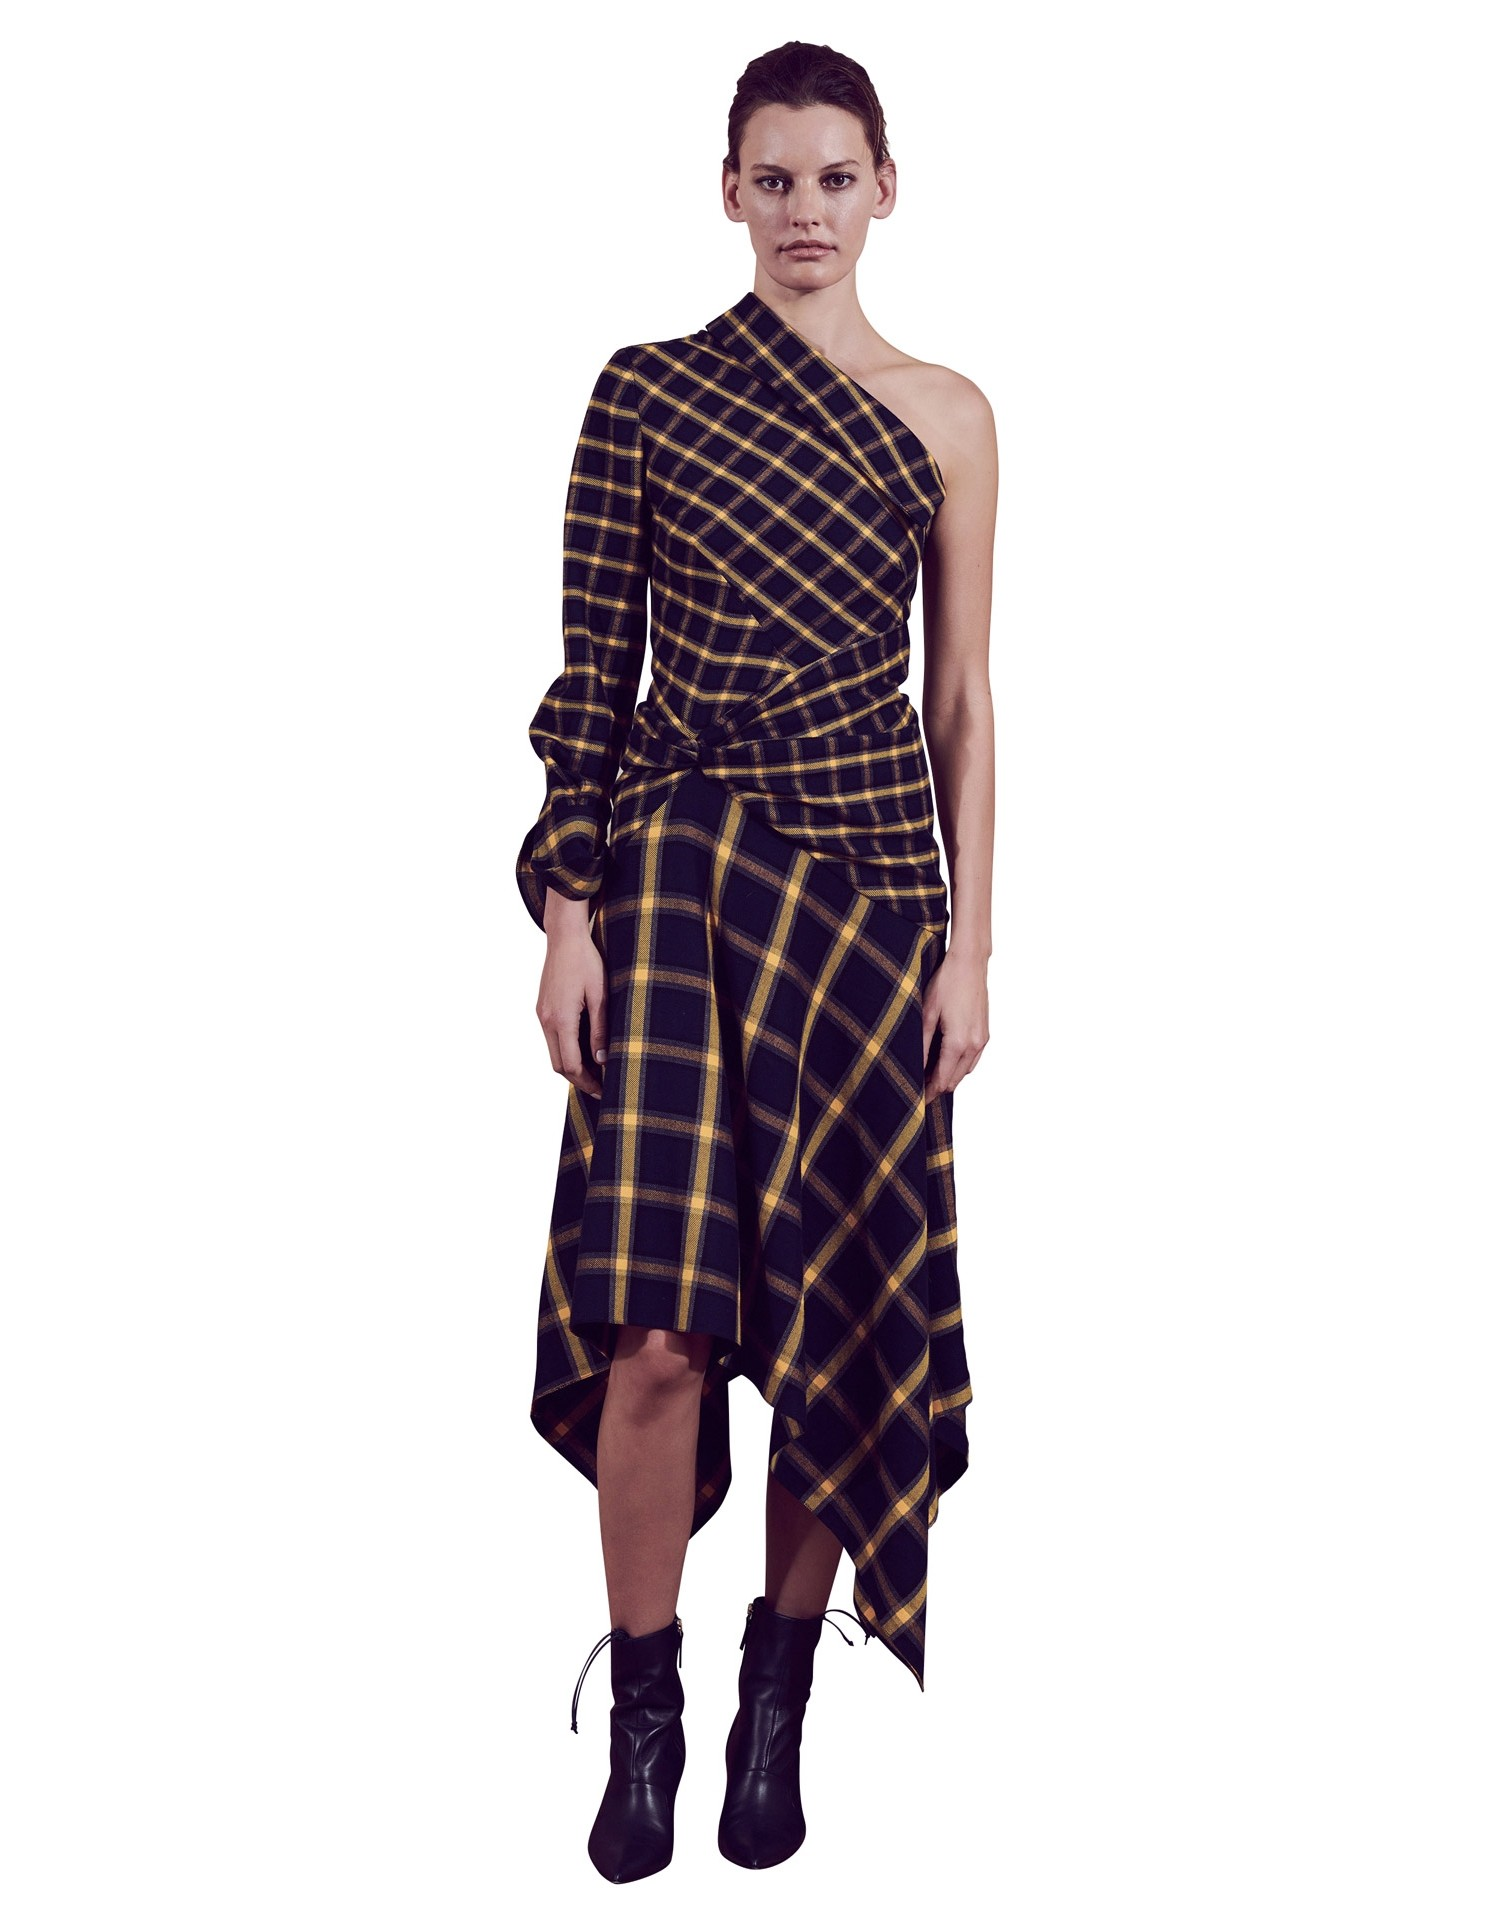 MONSE Asymmetrical Patchwork Dress on Model Front View